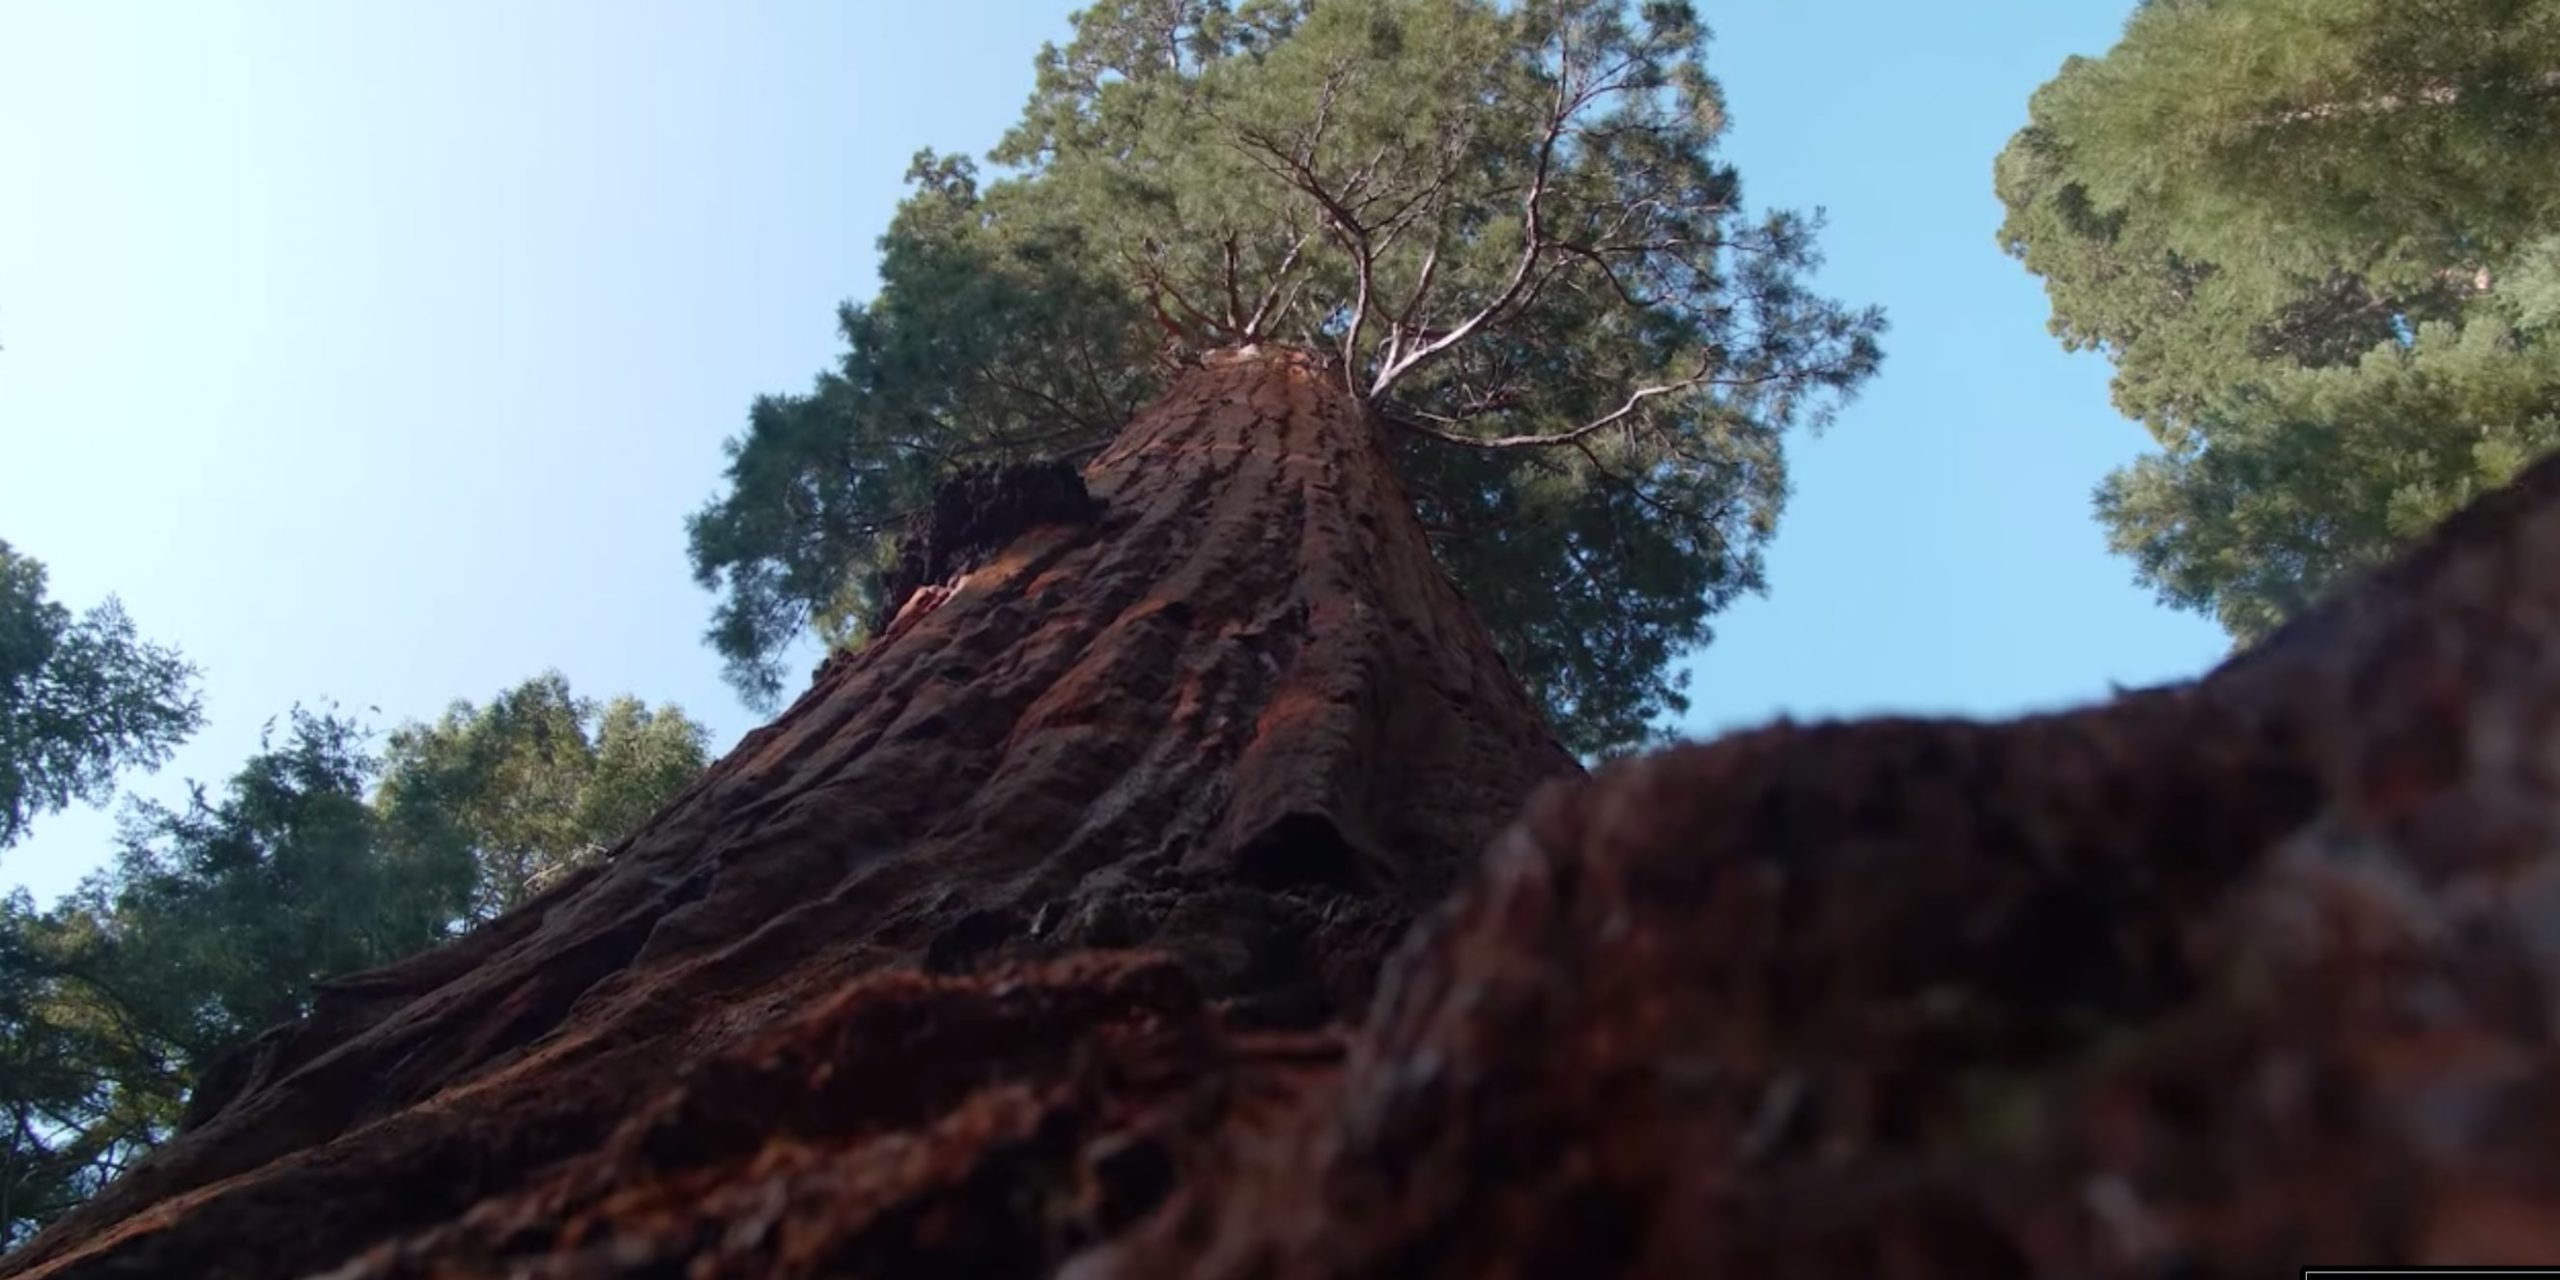 Photograph of a redwood tree from the ground